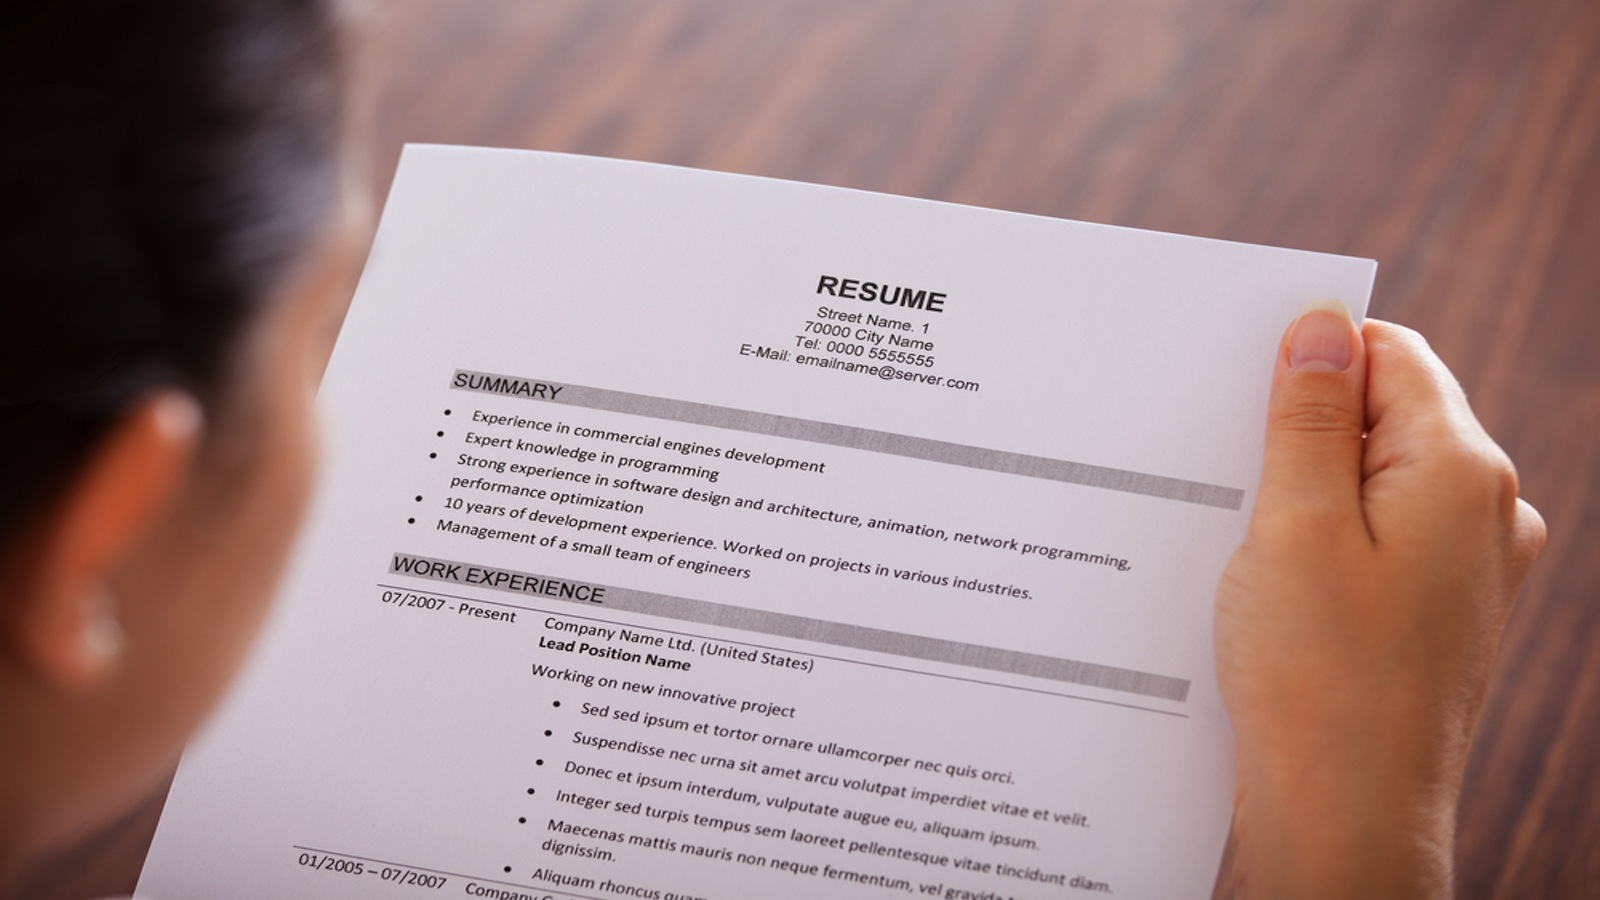 expert advice 8 resume myths debunked nerdwallet shutterstock 153914042